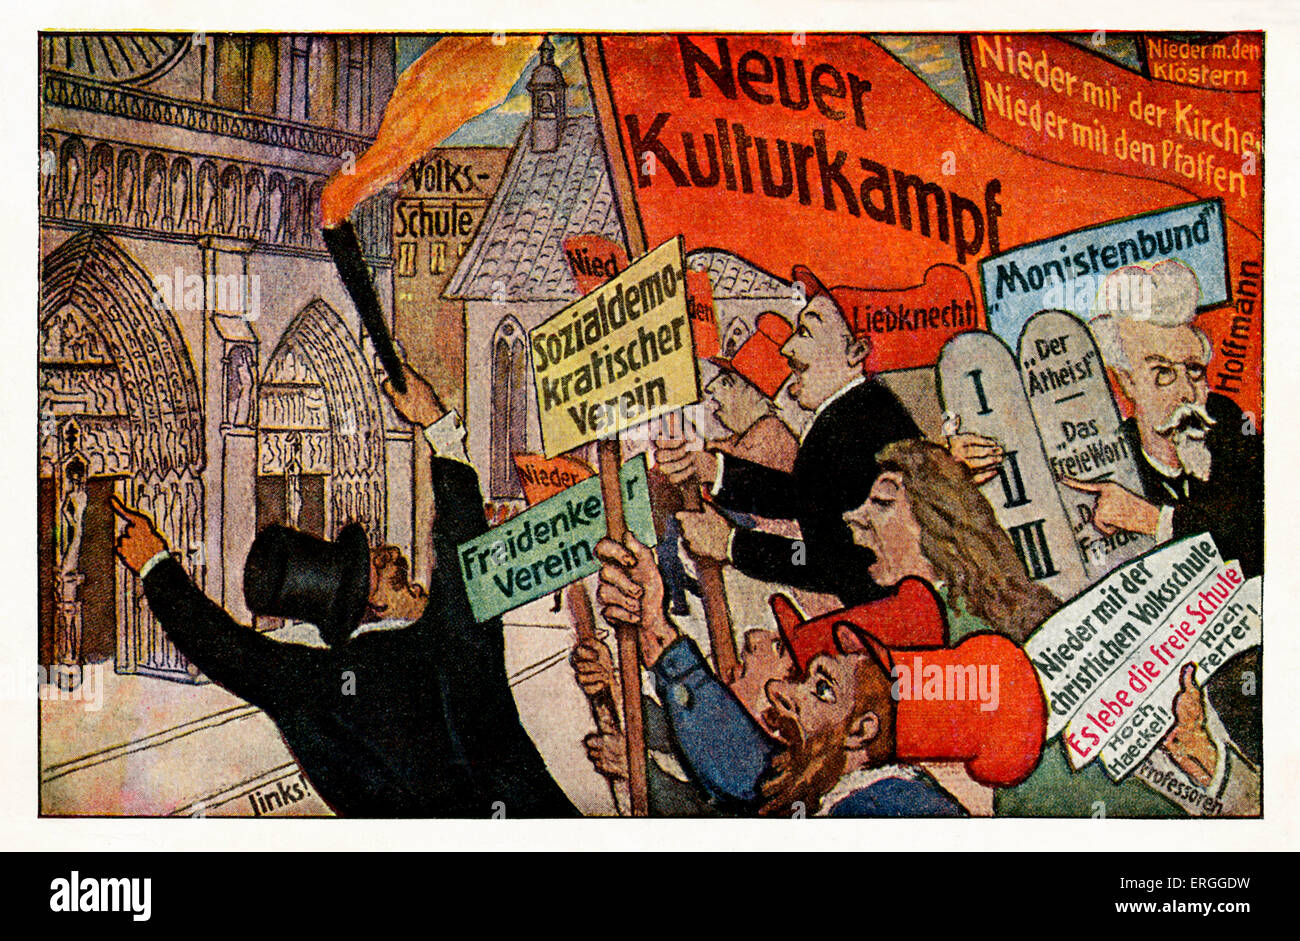 Demonstation of Social Democrats, Cologne (Köln), Germany. Pre - 1914.  Protest against clerical influence - Stock Image